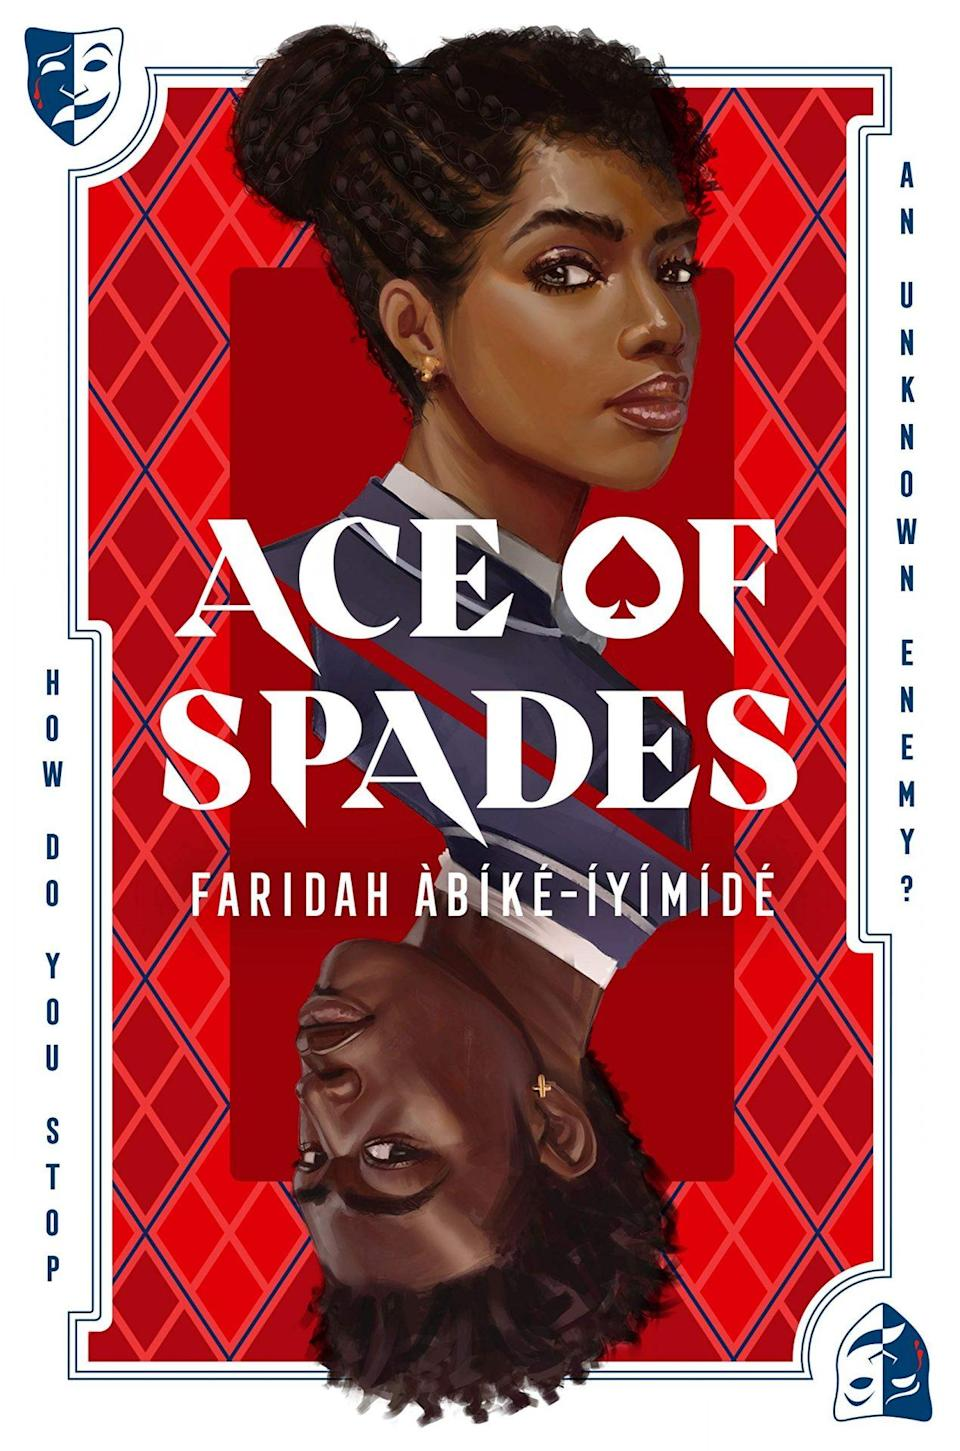 The cover of Ace of Spades shows a young Black man and a young Black woman against a tartan backdrop the words Ace of Spades across them